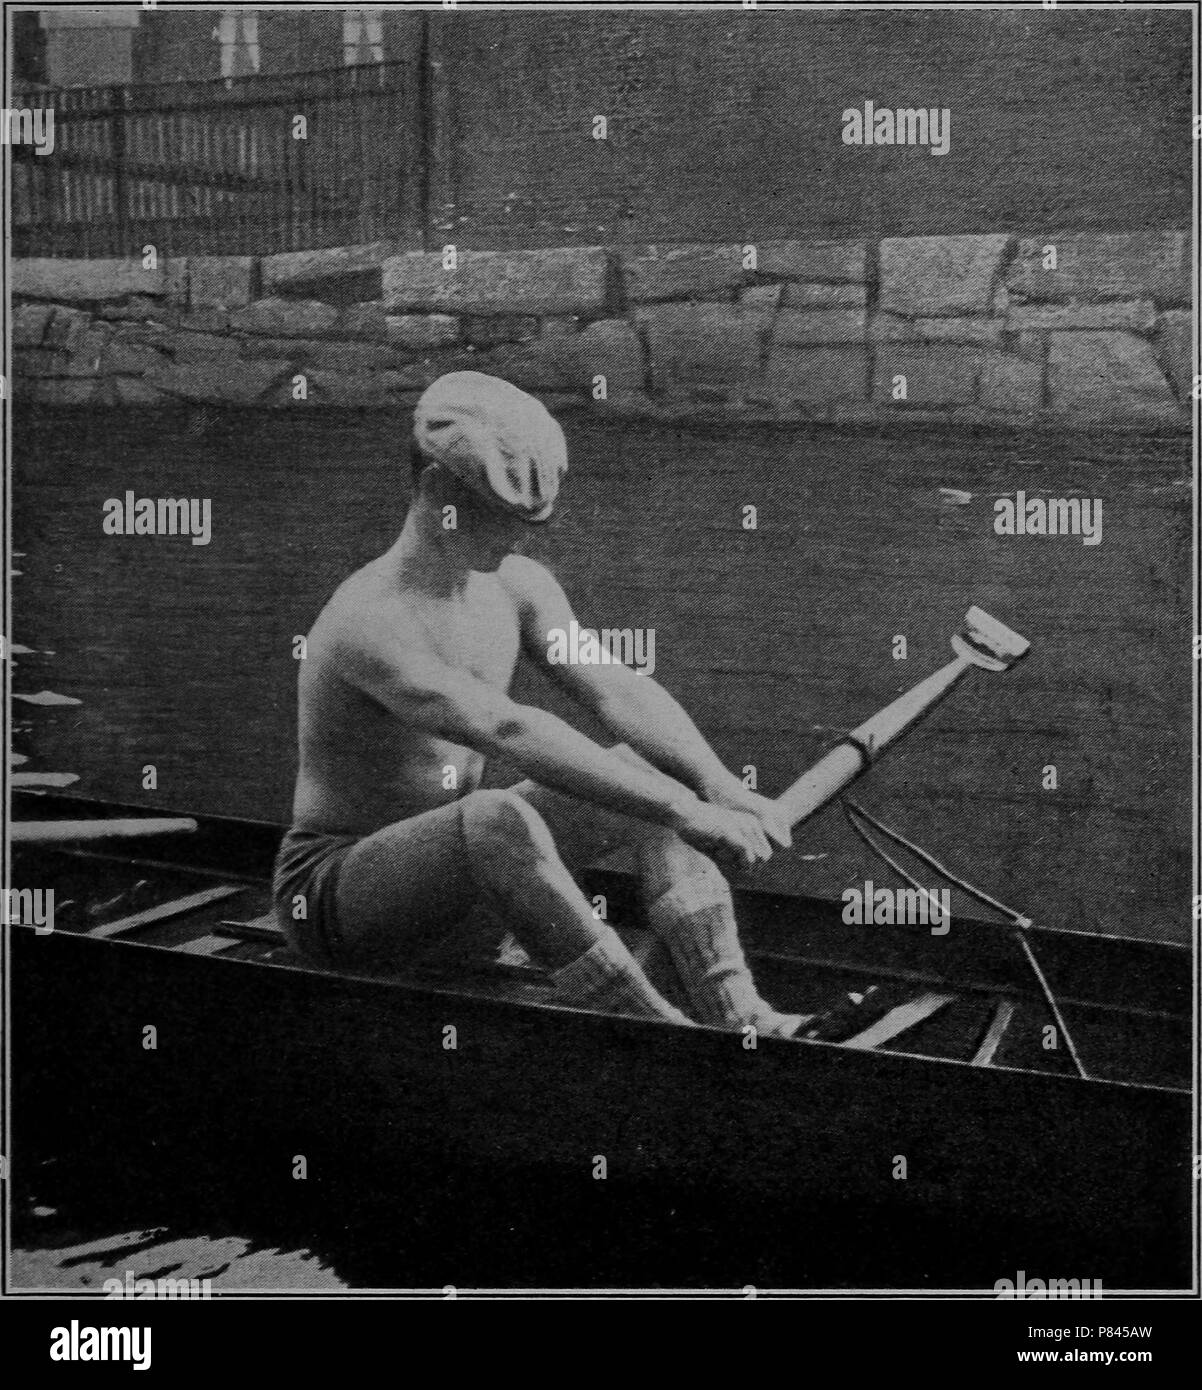 Black and white photograph of a man wearing a cap, shorts, and socks, but no shirt, sitting in a scull and rowing a single oar with both hands, with a stone embankment in the background, 1906. Courtesy Internet Archive. () - Stock Image